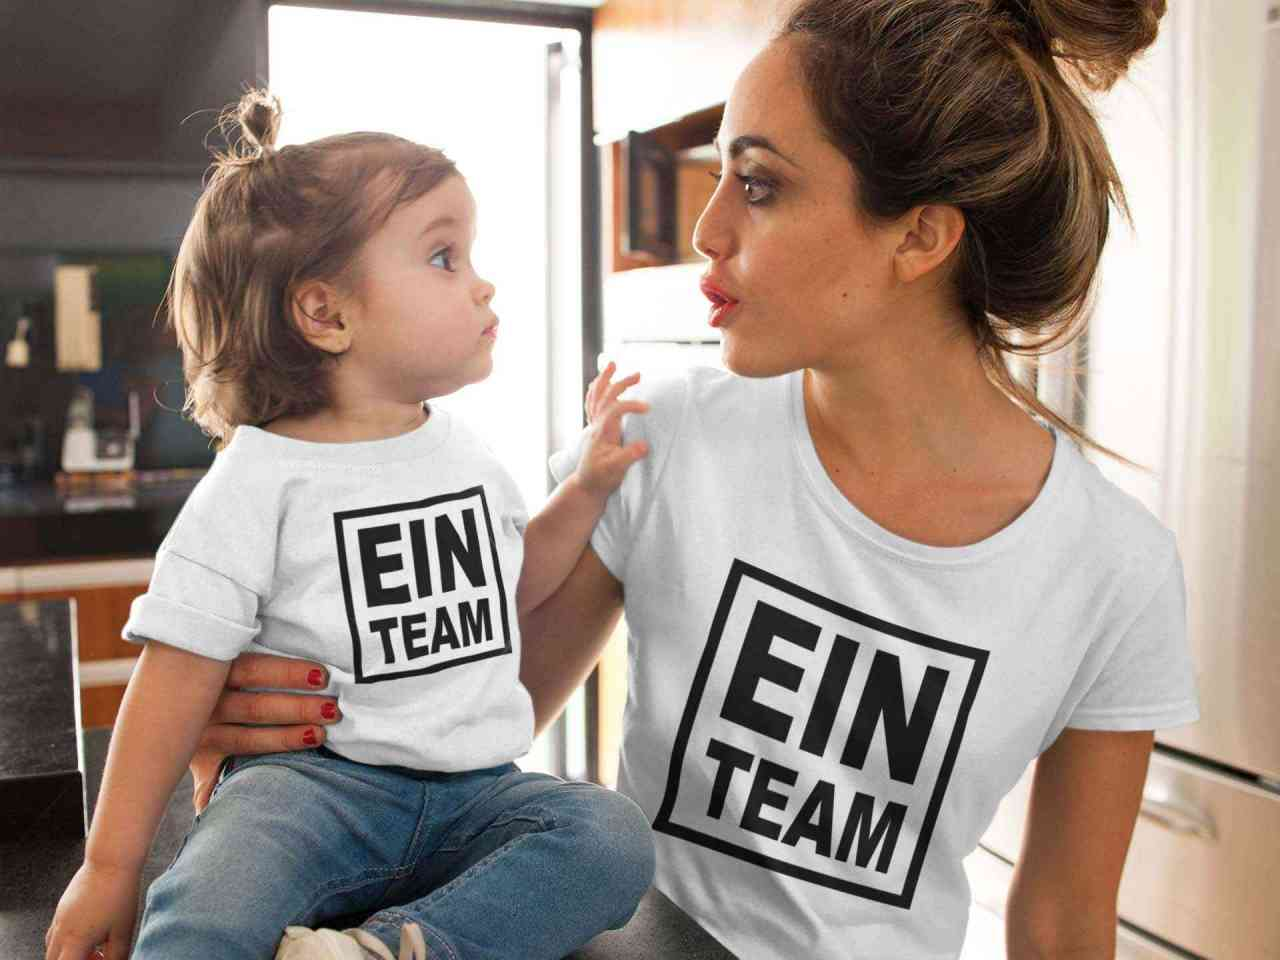 Ein Team Partnerlook T-Shirt | Freunde Familie Kinder Partner